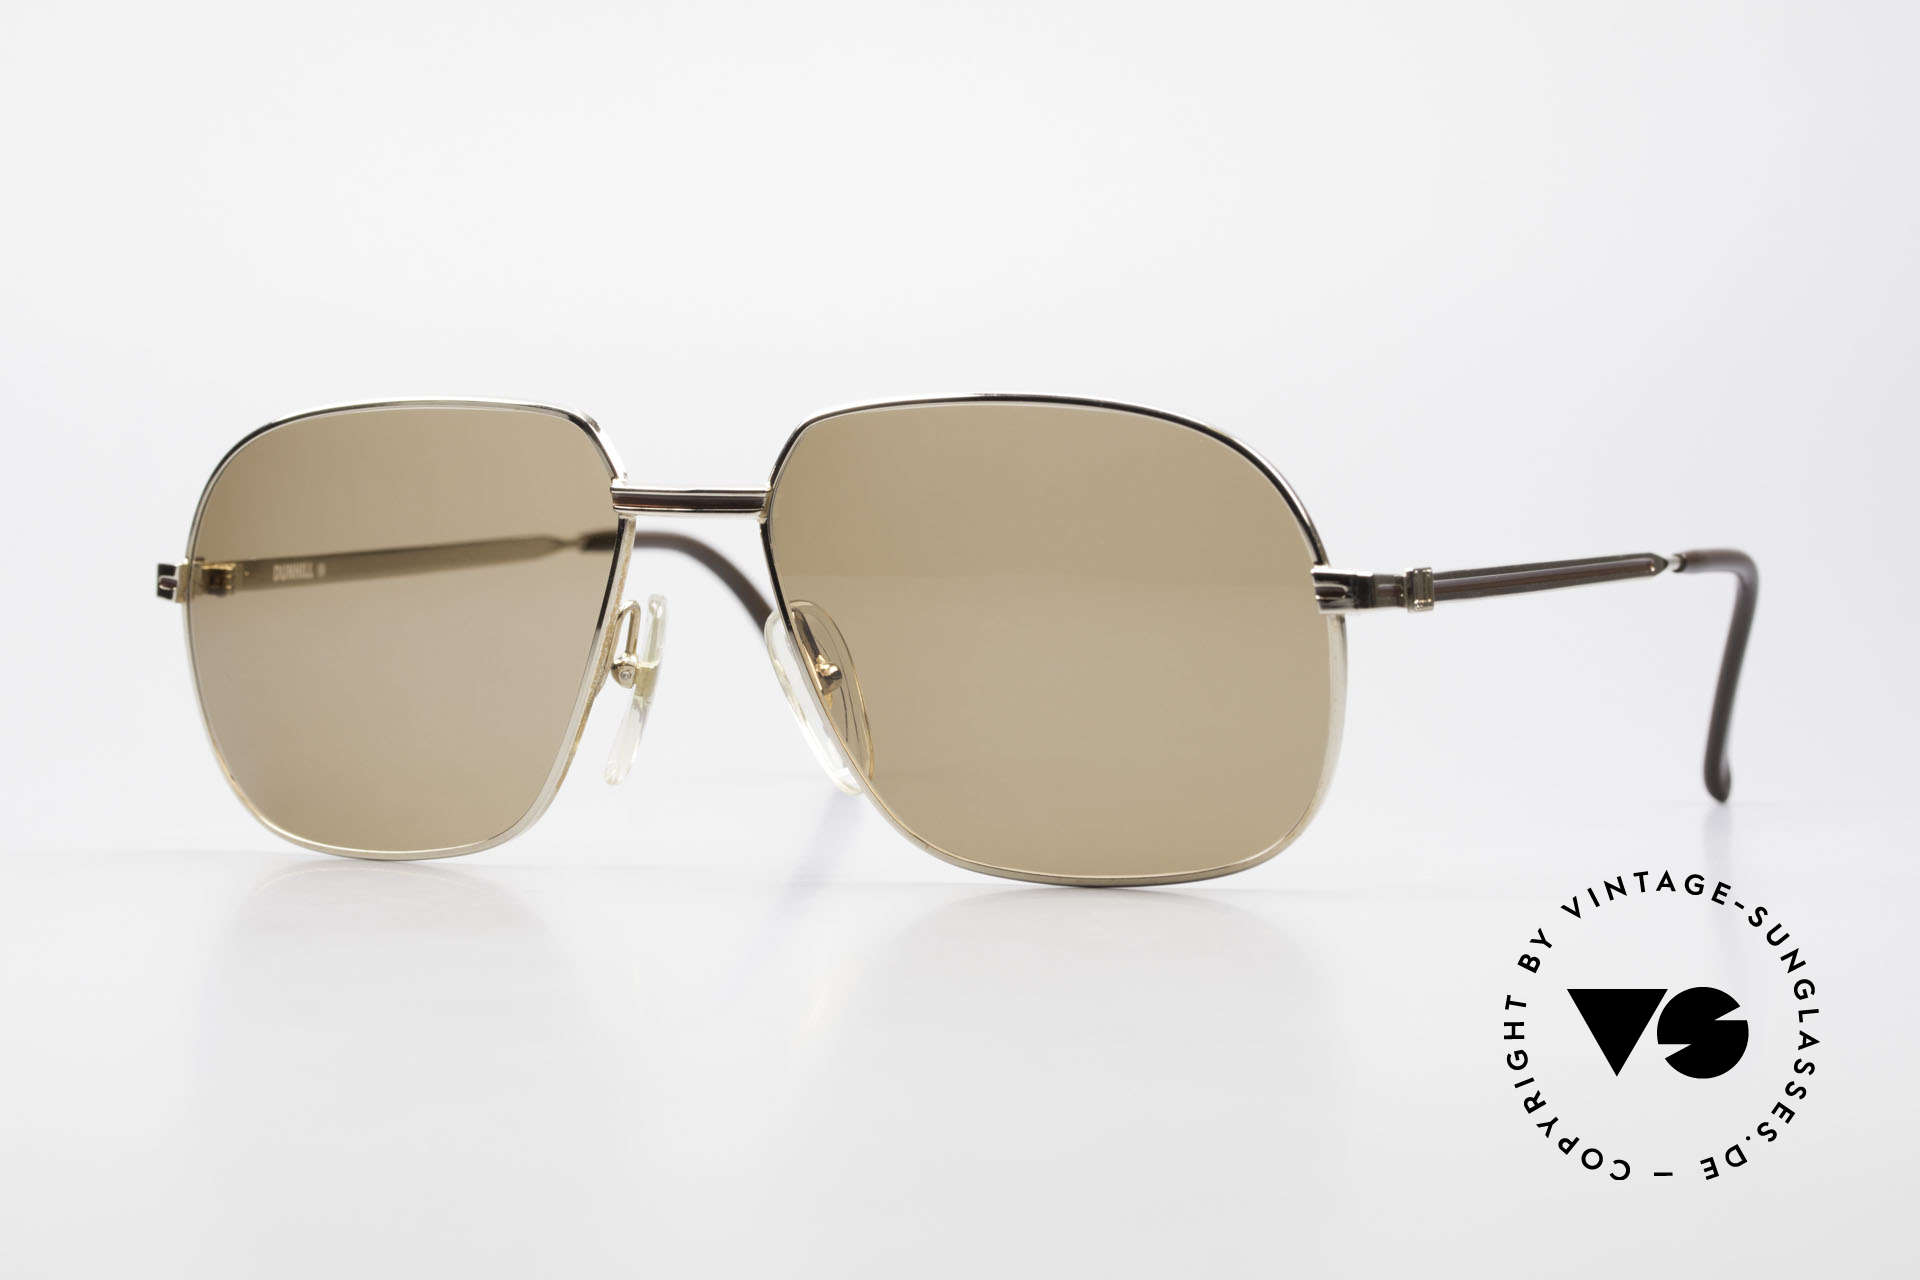 Dunhill 6123 Gold Plated Gentlemen's Frame, true masterpiece of quality, luxury lifestyle & design, Made for Men